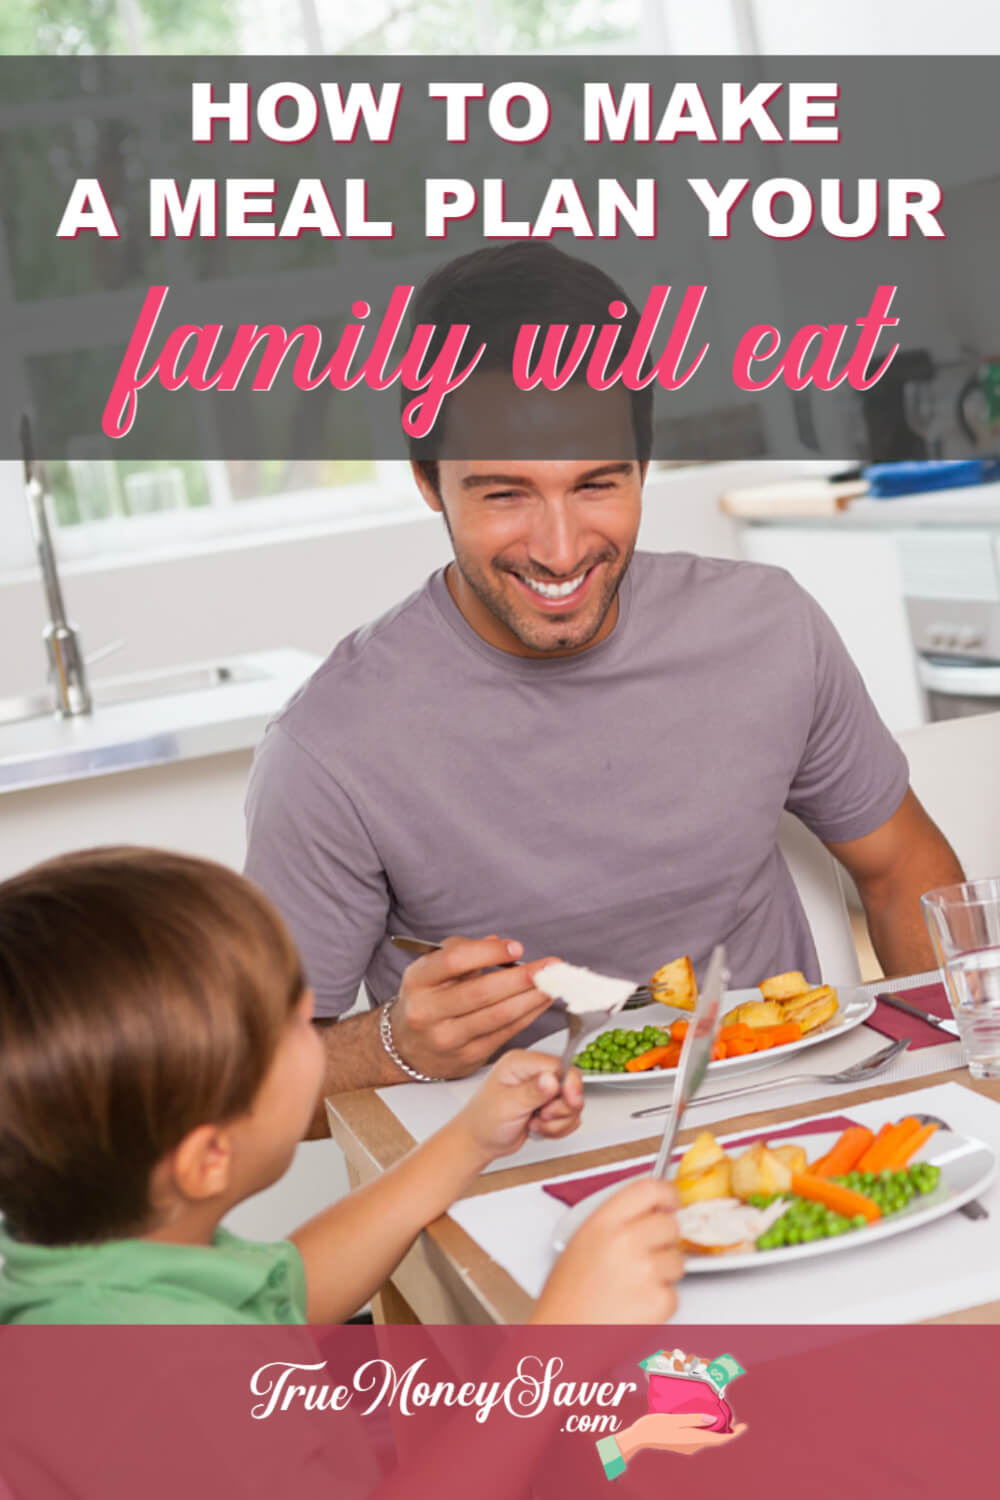 How To Make A Meal Plan Your Family Will Actually Eat